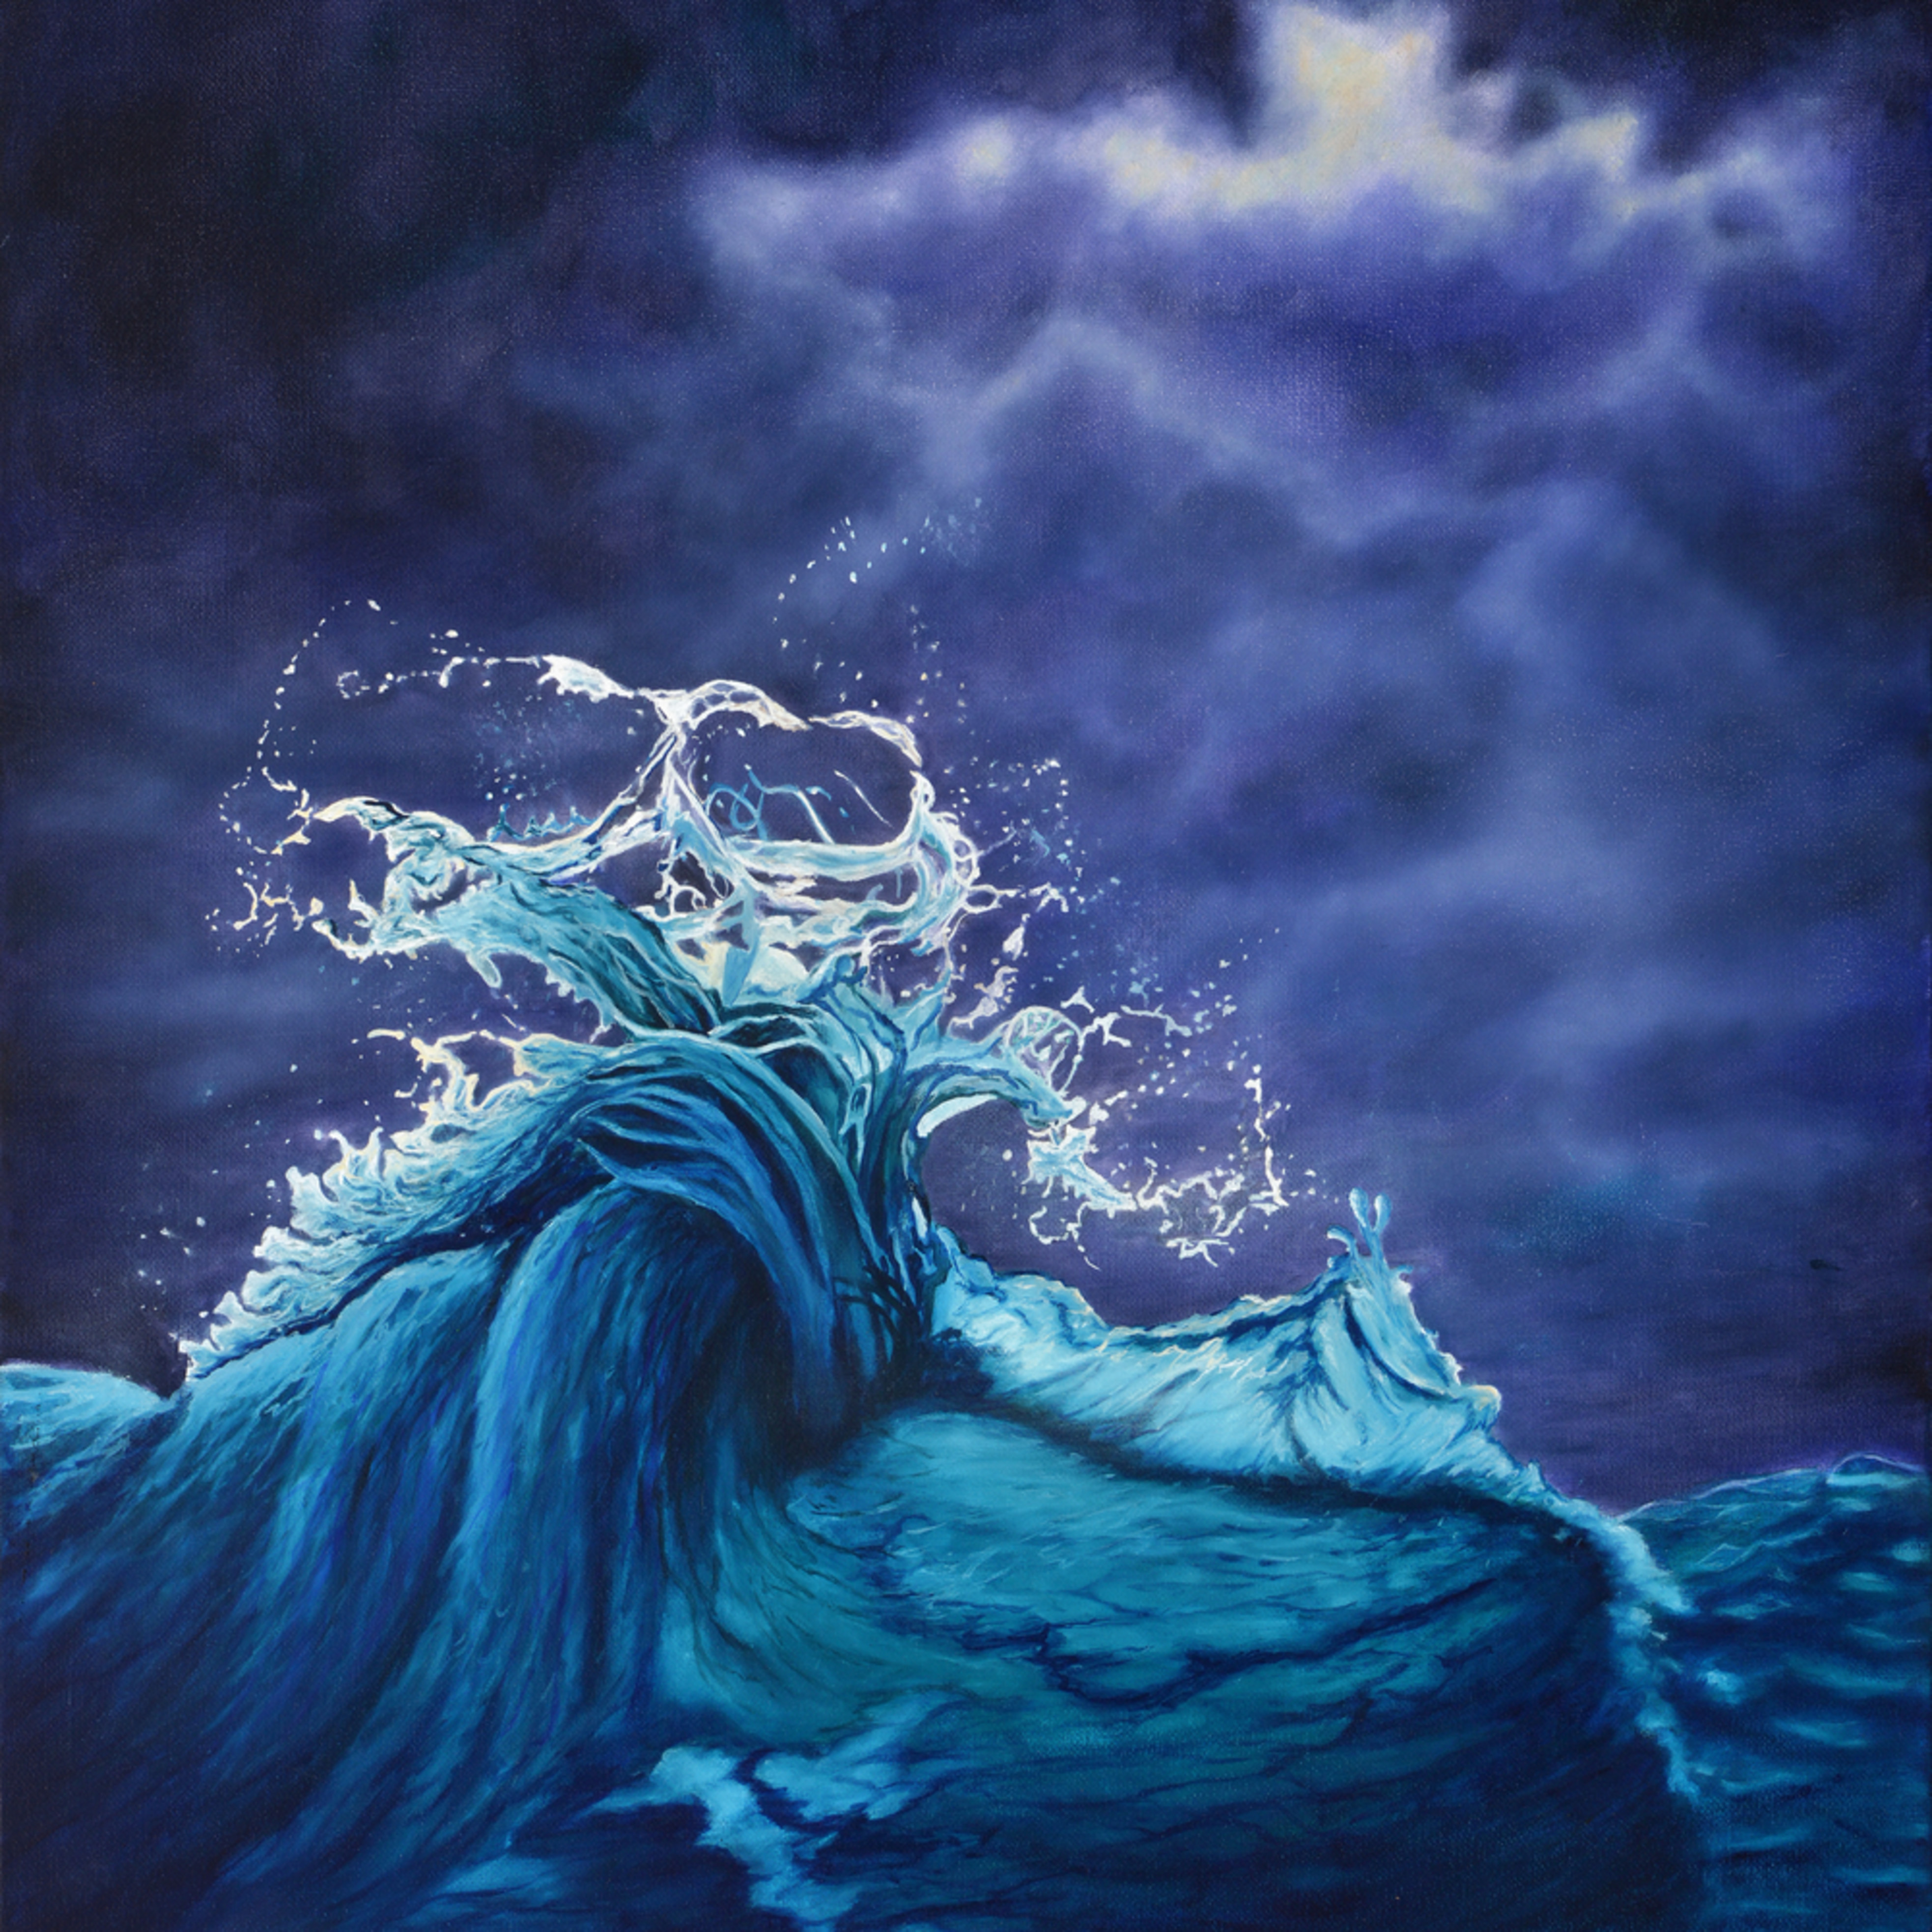 08  ocean wave oil on canvas by monica marquez gatica mmg art studio yaxdpm